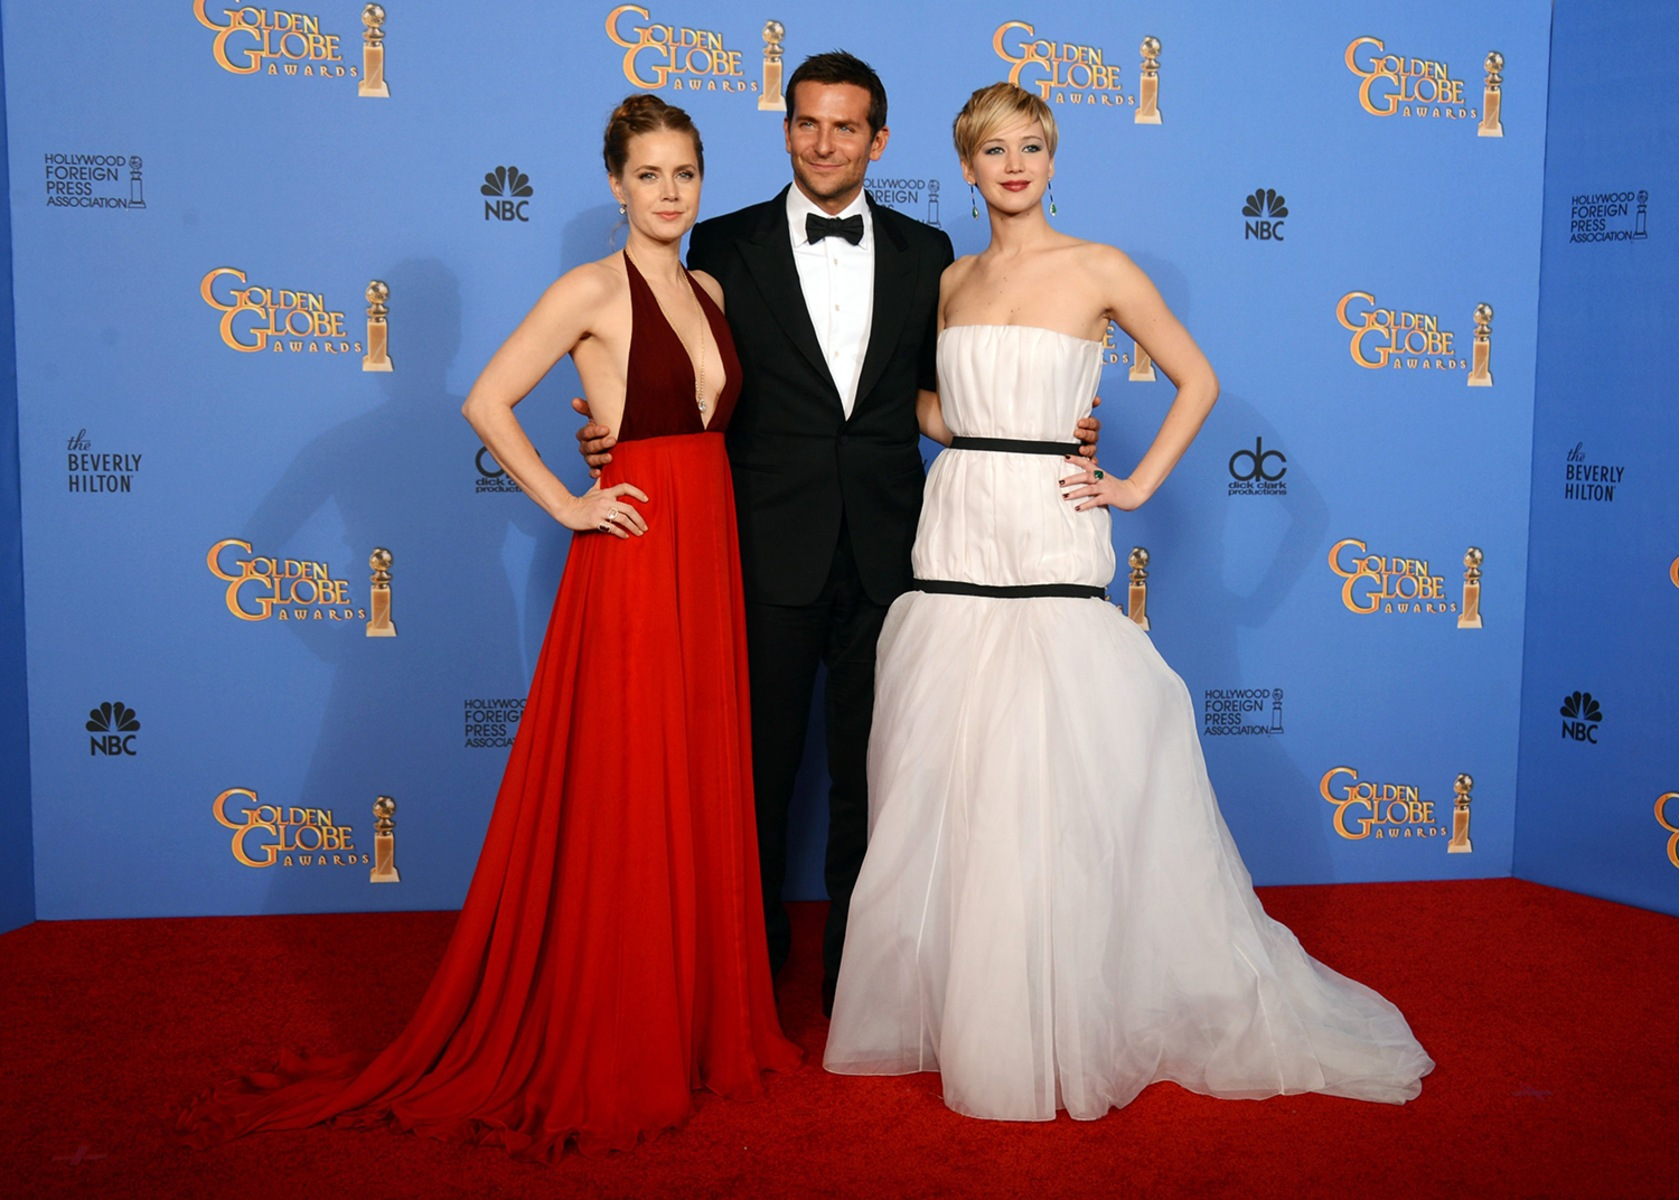 Image: Amy Adams, Bradley Cooper, Jennifer Lawrence